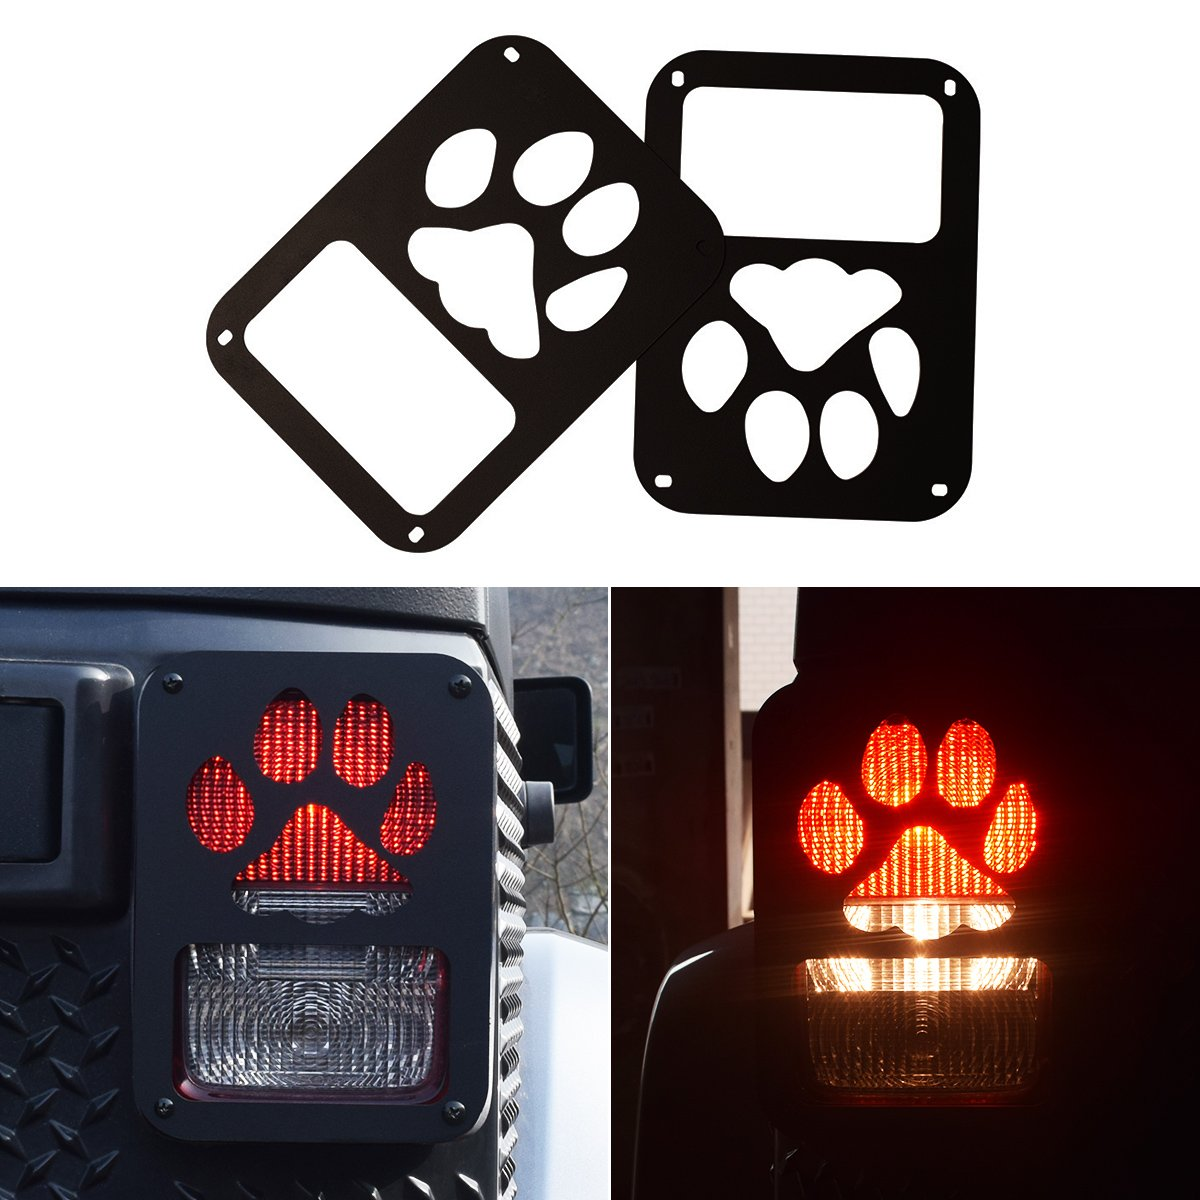 ICARS Tail Lamp Tail light Cover Trim Guards Protector Rear Taillights for 2007-2017 Jeep Wrangler JK Unlimited Accessories (Dog Paw Style)